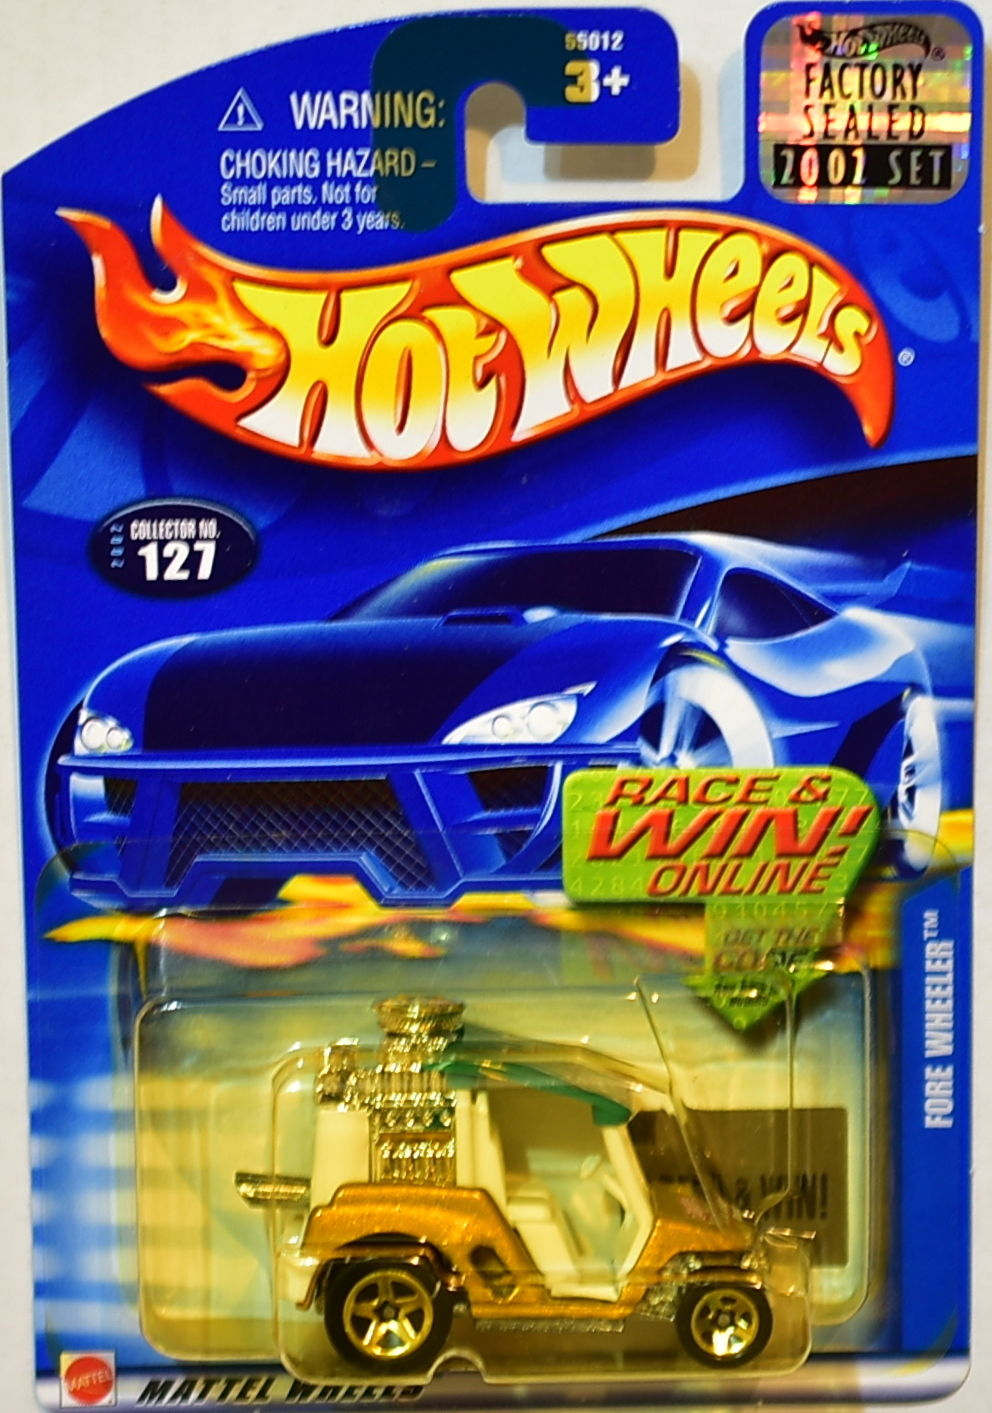 HOT WHEELS 2002 FORE WHEELER #127 FACTORY SEALED